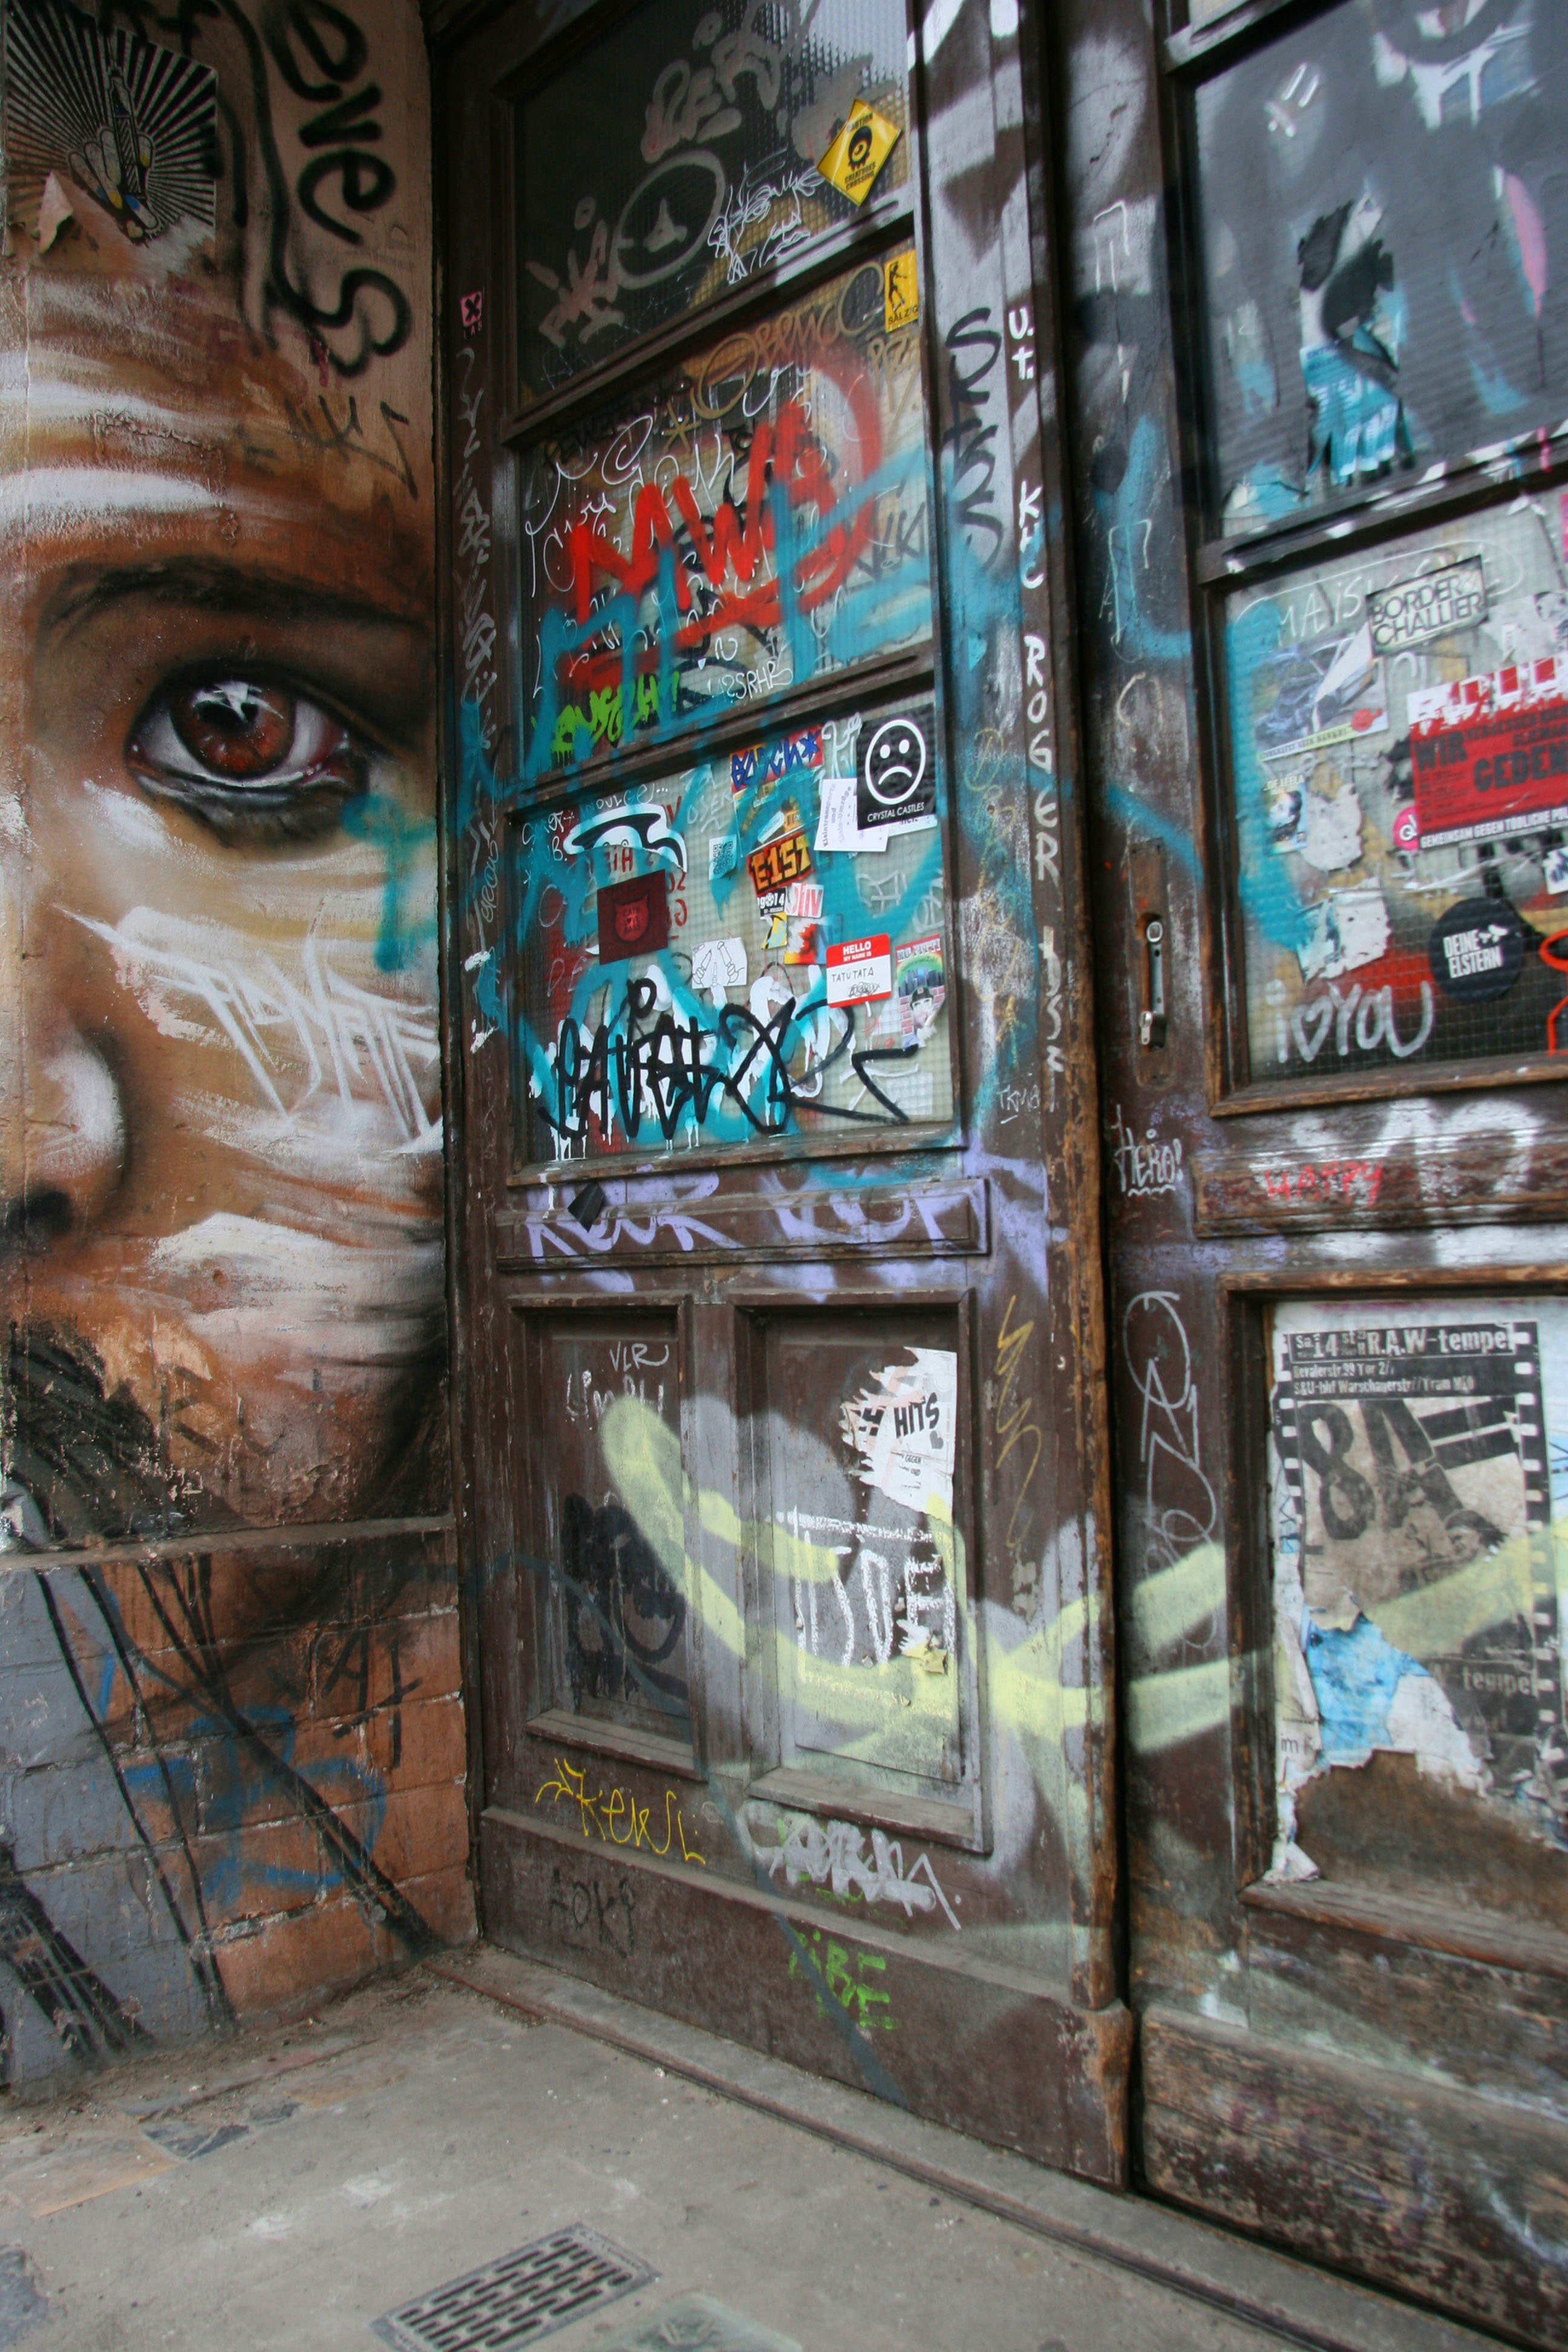 All those in favour say 'Eye': Street Art by Matt Adnate in a Berlin doorway